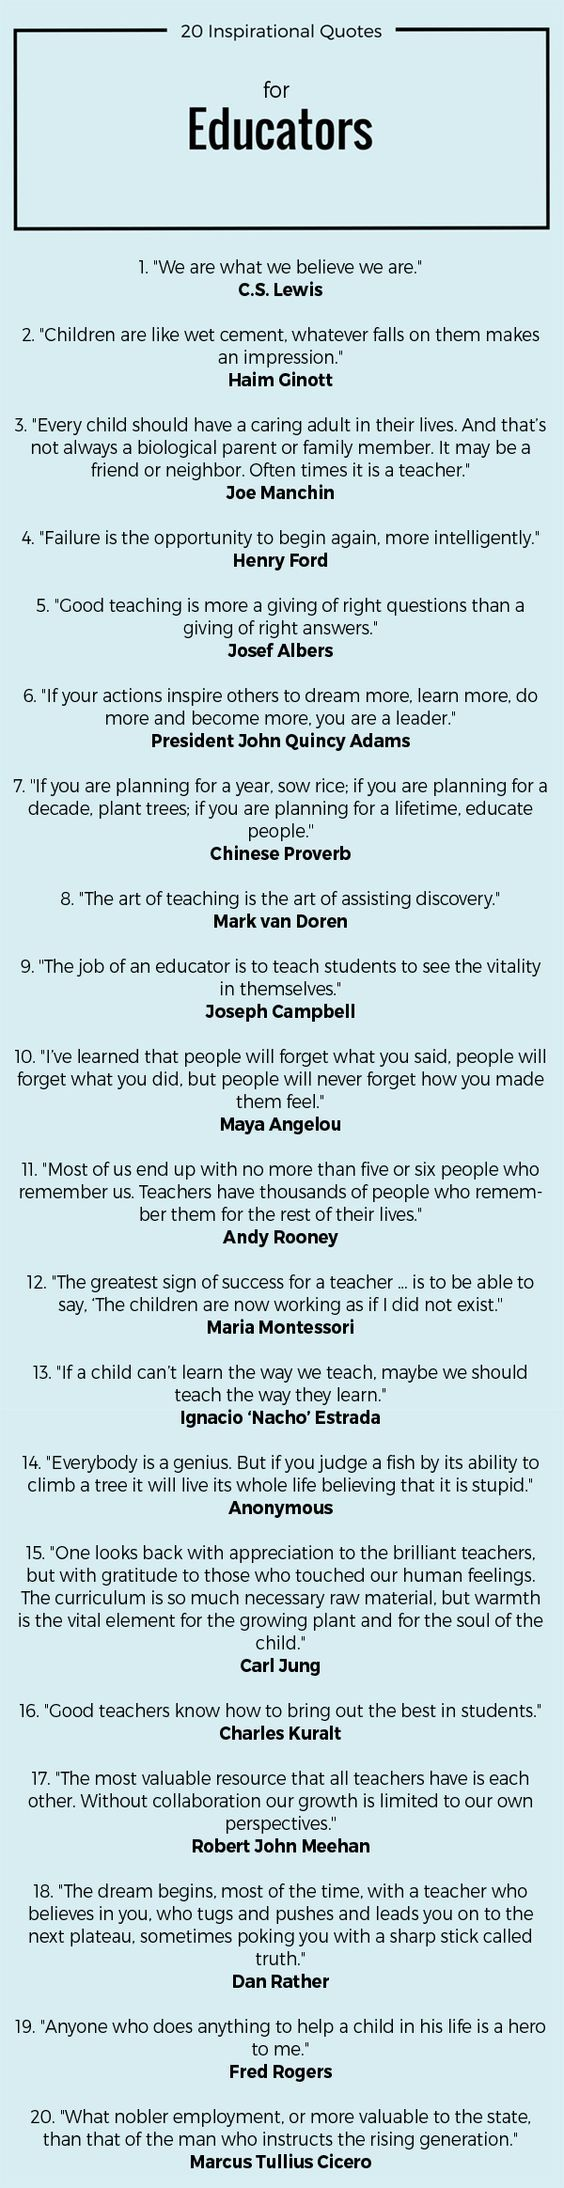 20 Inspirational Quotes for Educators [infographic] | Teacher Soul ...